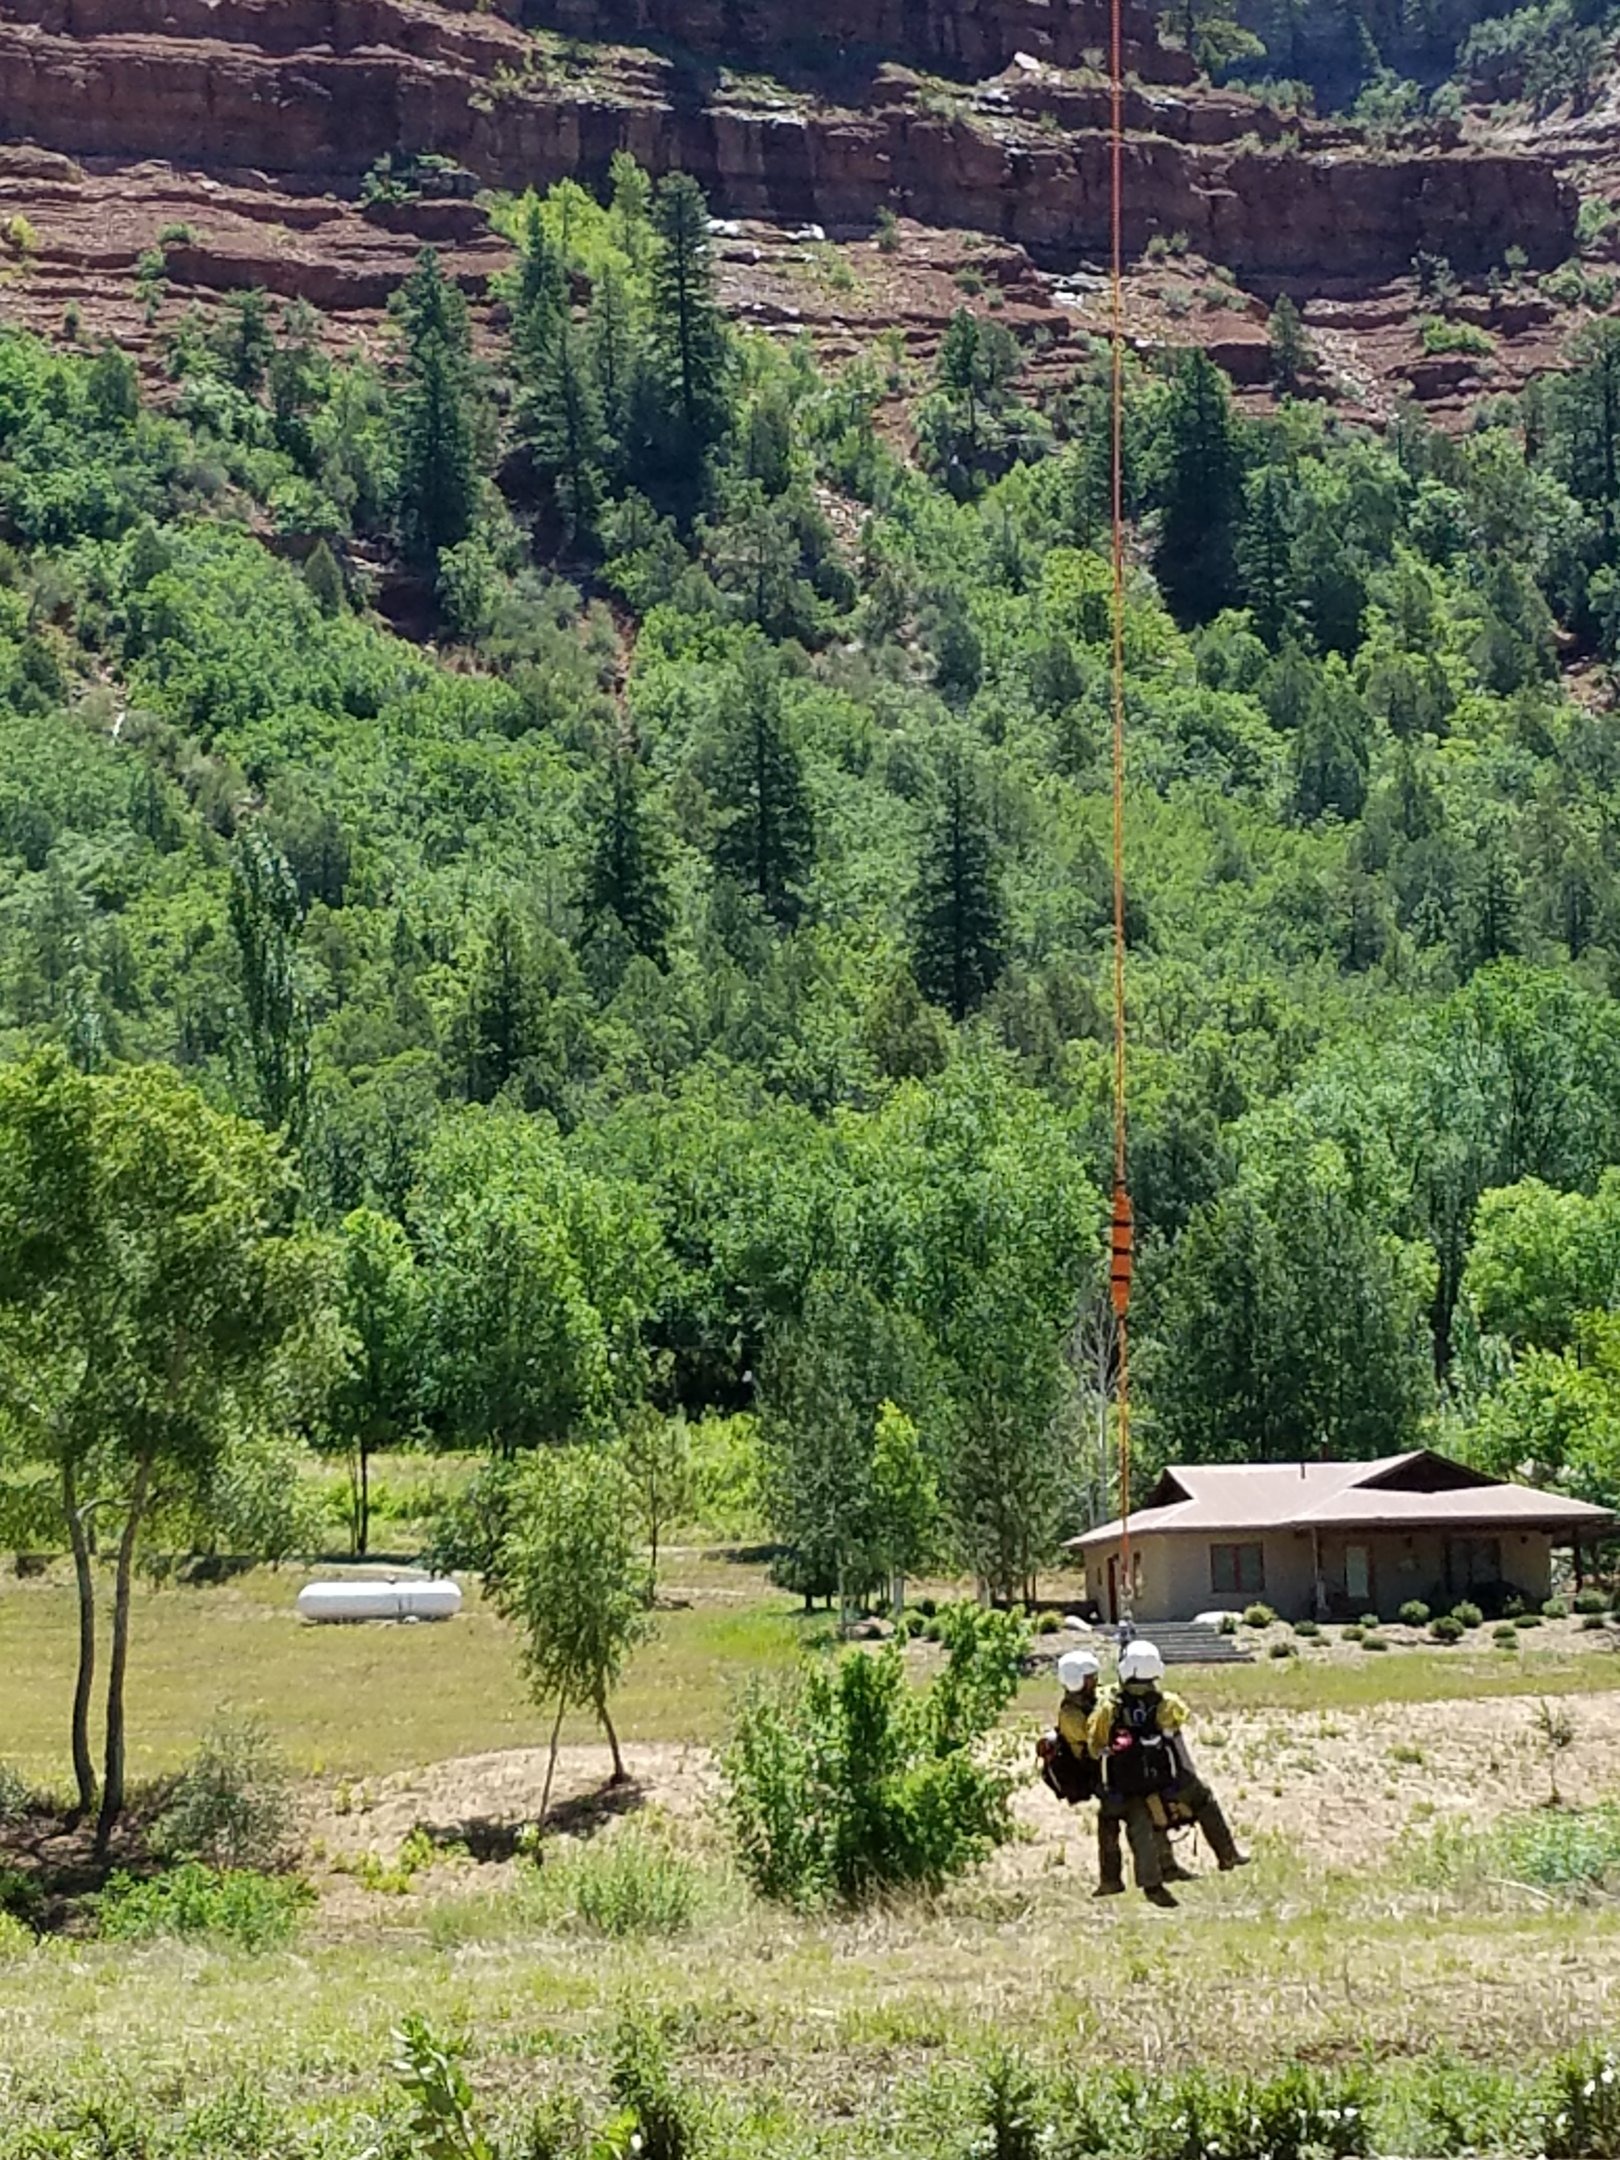 20180619_114328-jpg.43996_Firefighting in Colorado_Off the Road_Squat the Planet_10:54 PM